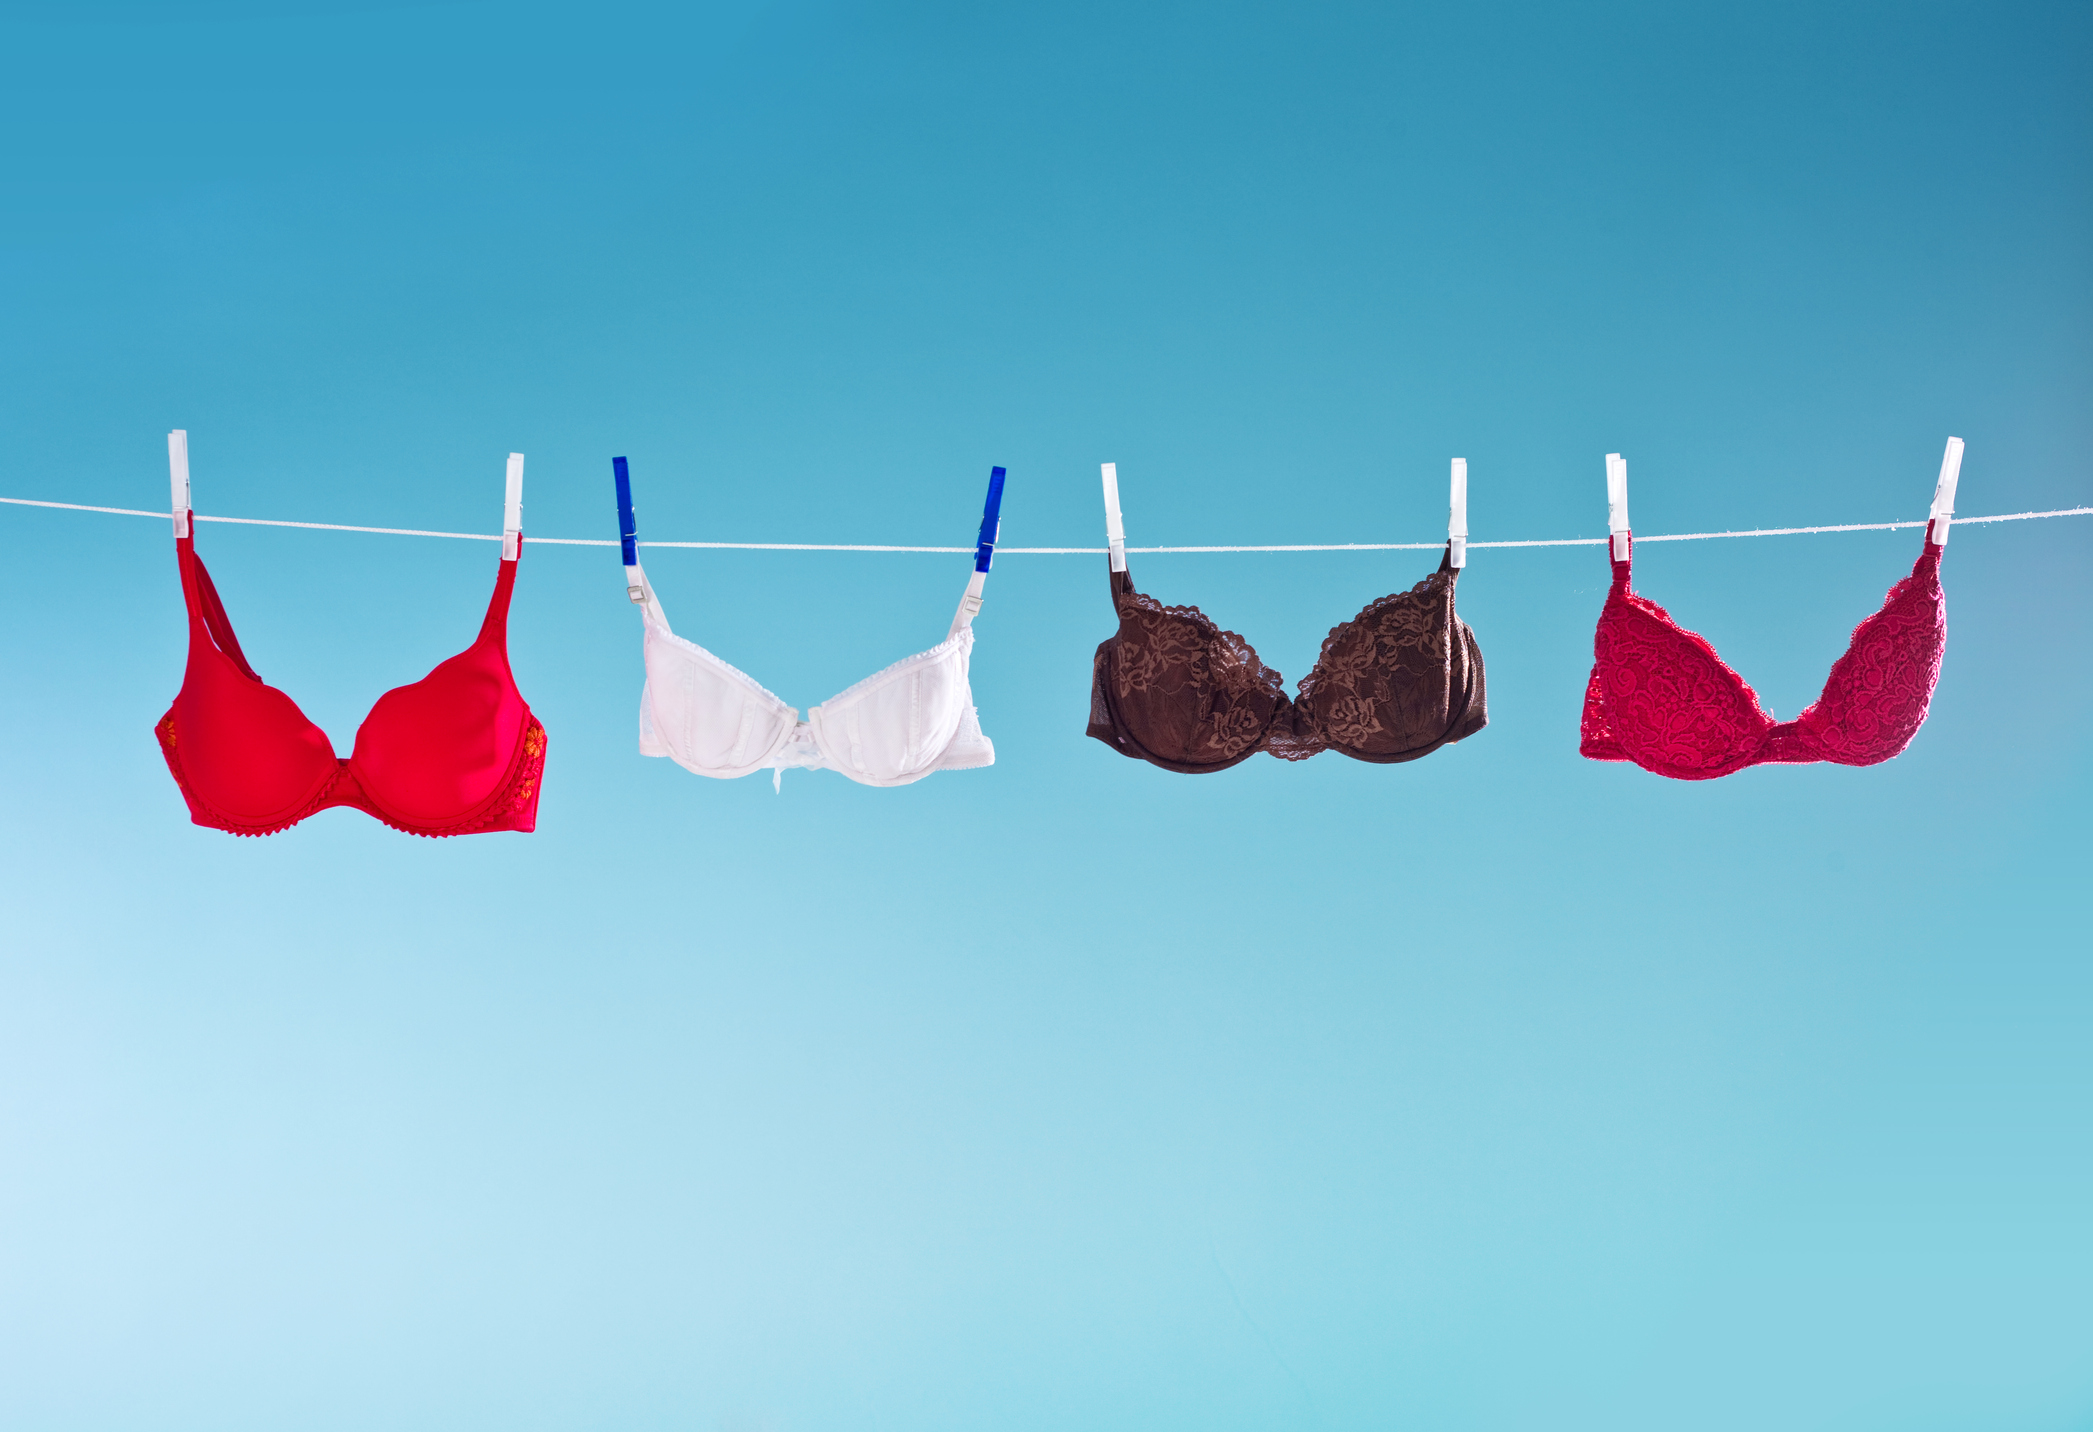 Laundry hangs out on a clothesline to dry. Colorful bras hanging against blue background. Summer time.